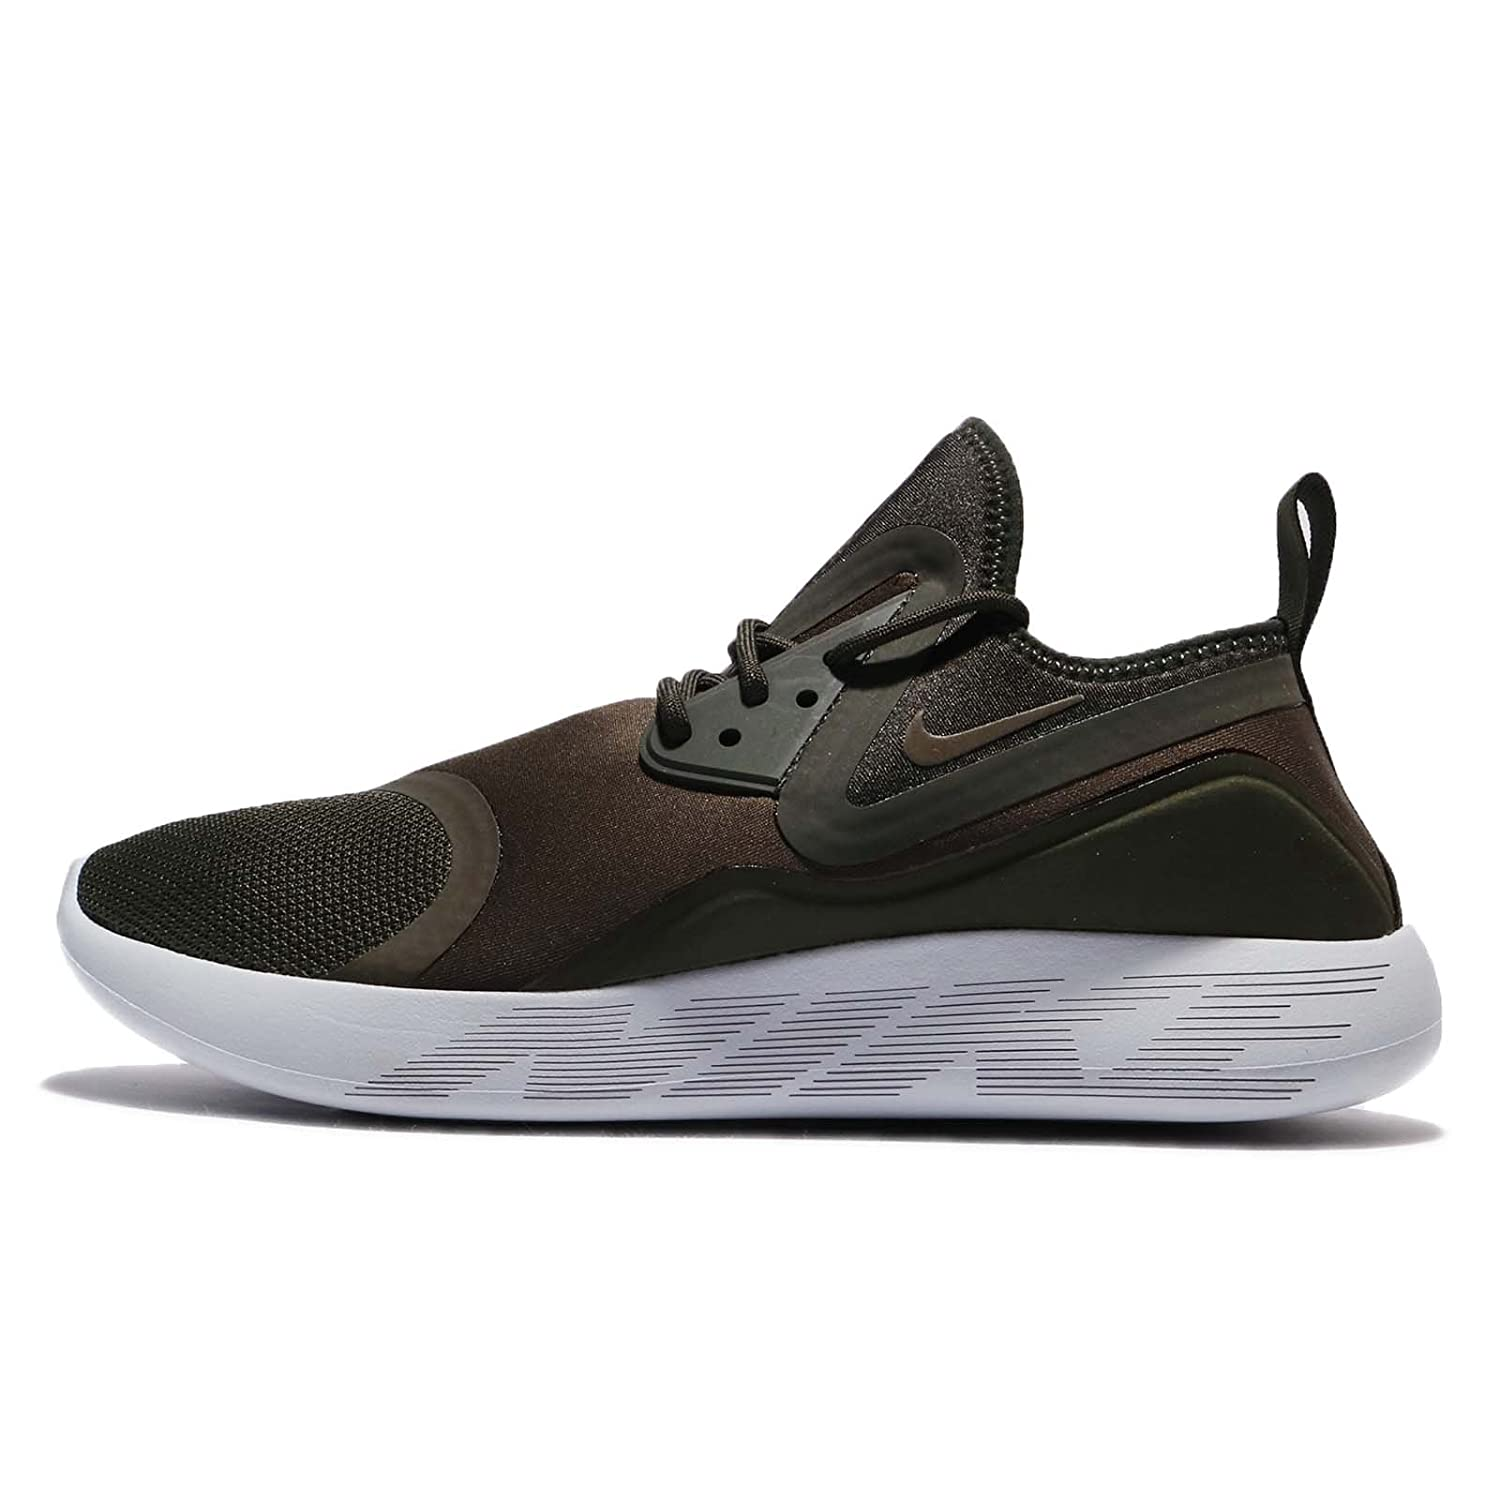 NIKE Mens Lunarcharge Essential Round Toe Training Running Shoes B07457T65Y 11.5 D(M) US|Cargo Khaki 301